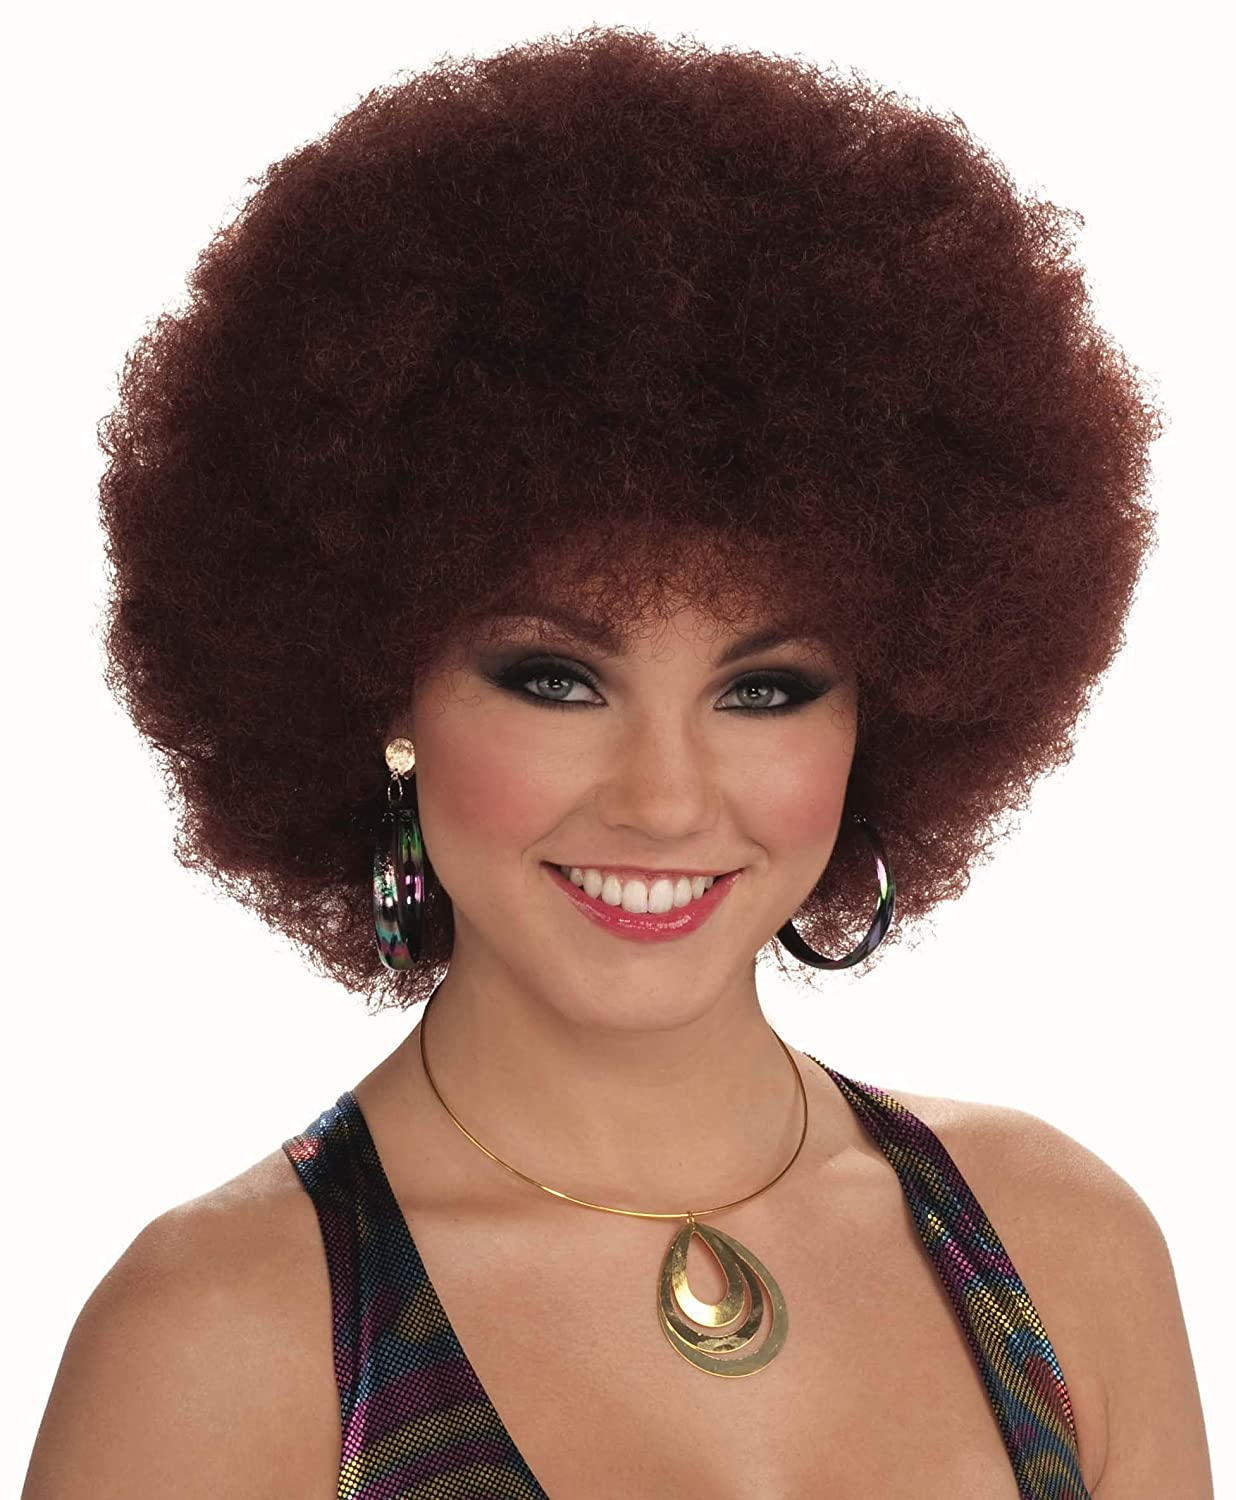 Amazon.com: Forum Novelties Peluca Afro para muñeca de ...